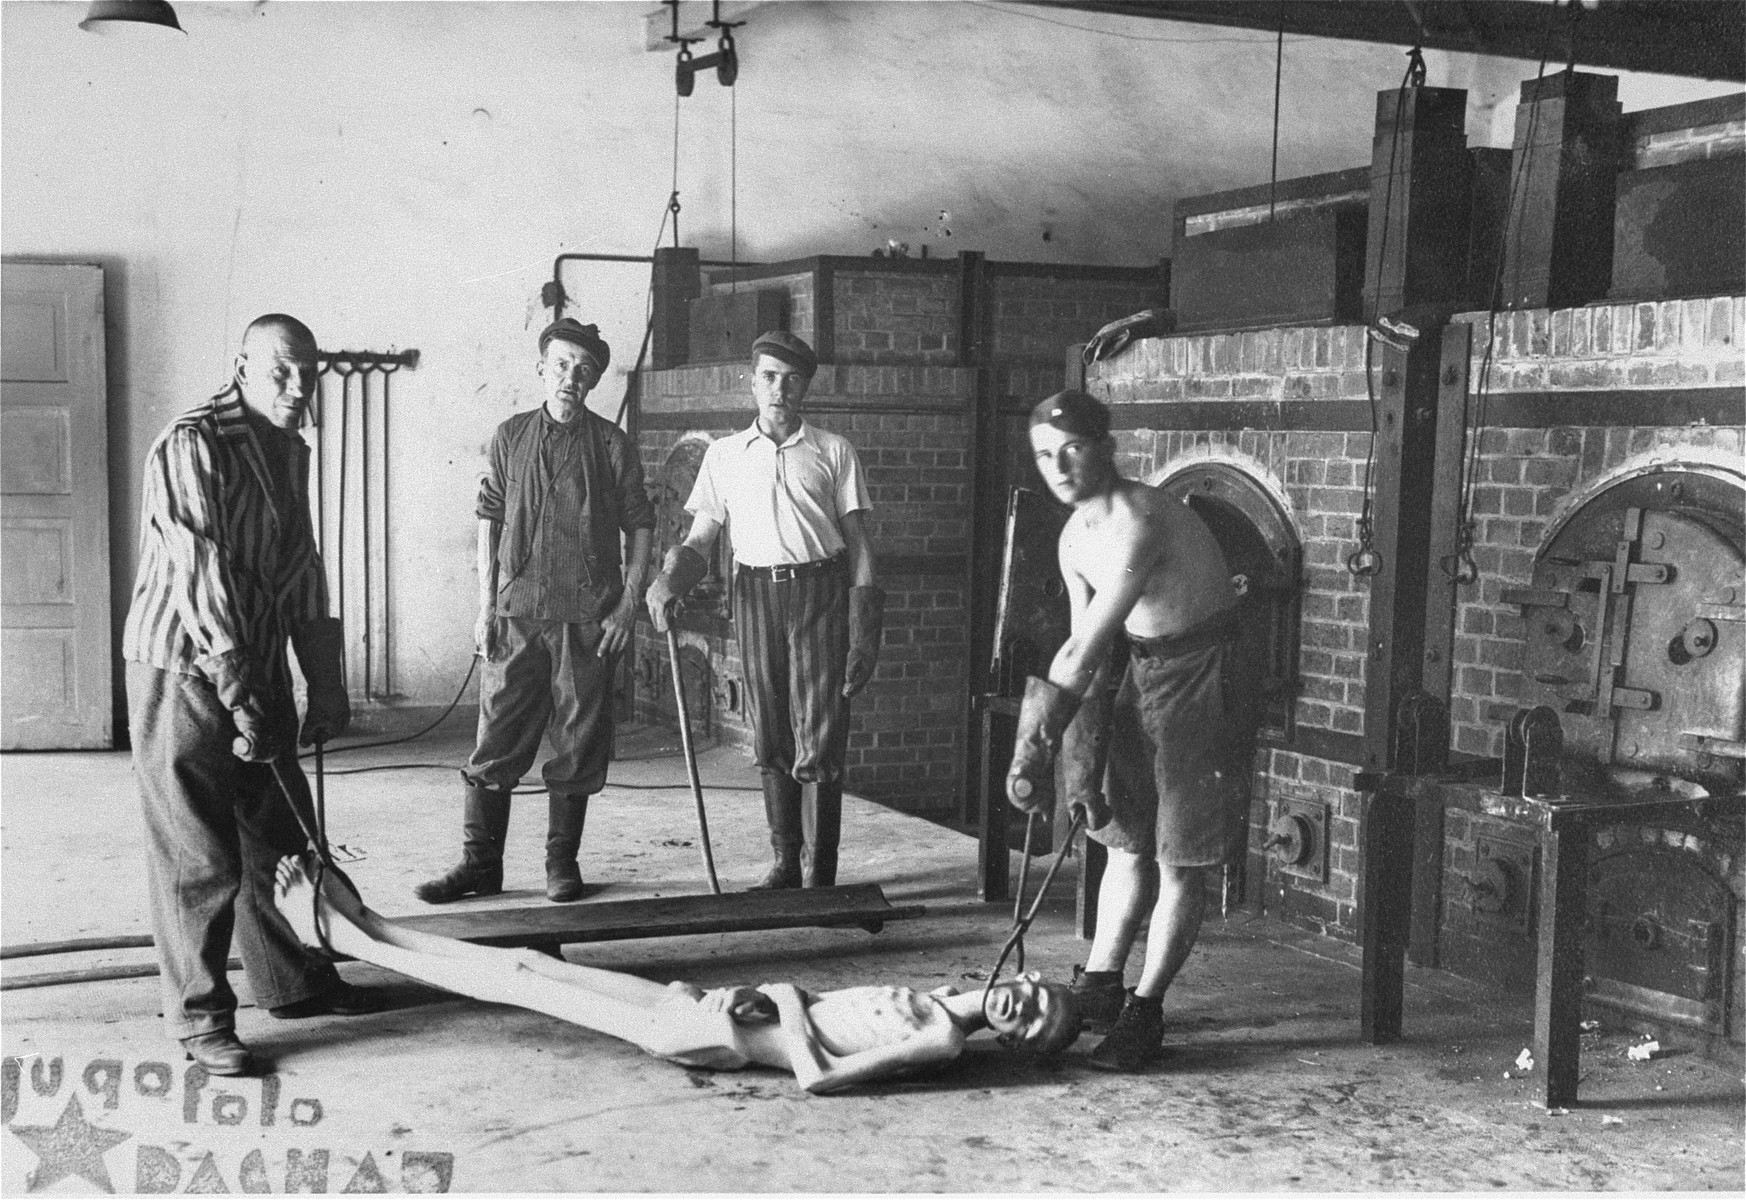 Survivors of the Dachau concentration camp demonstrate the operation of the crematorium by preparing a corpse to be placed into one of the ovens.